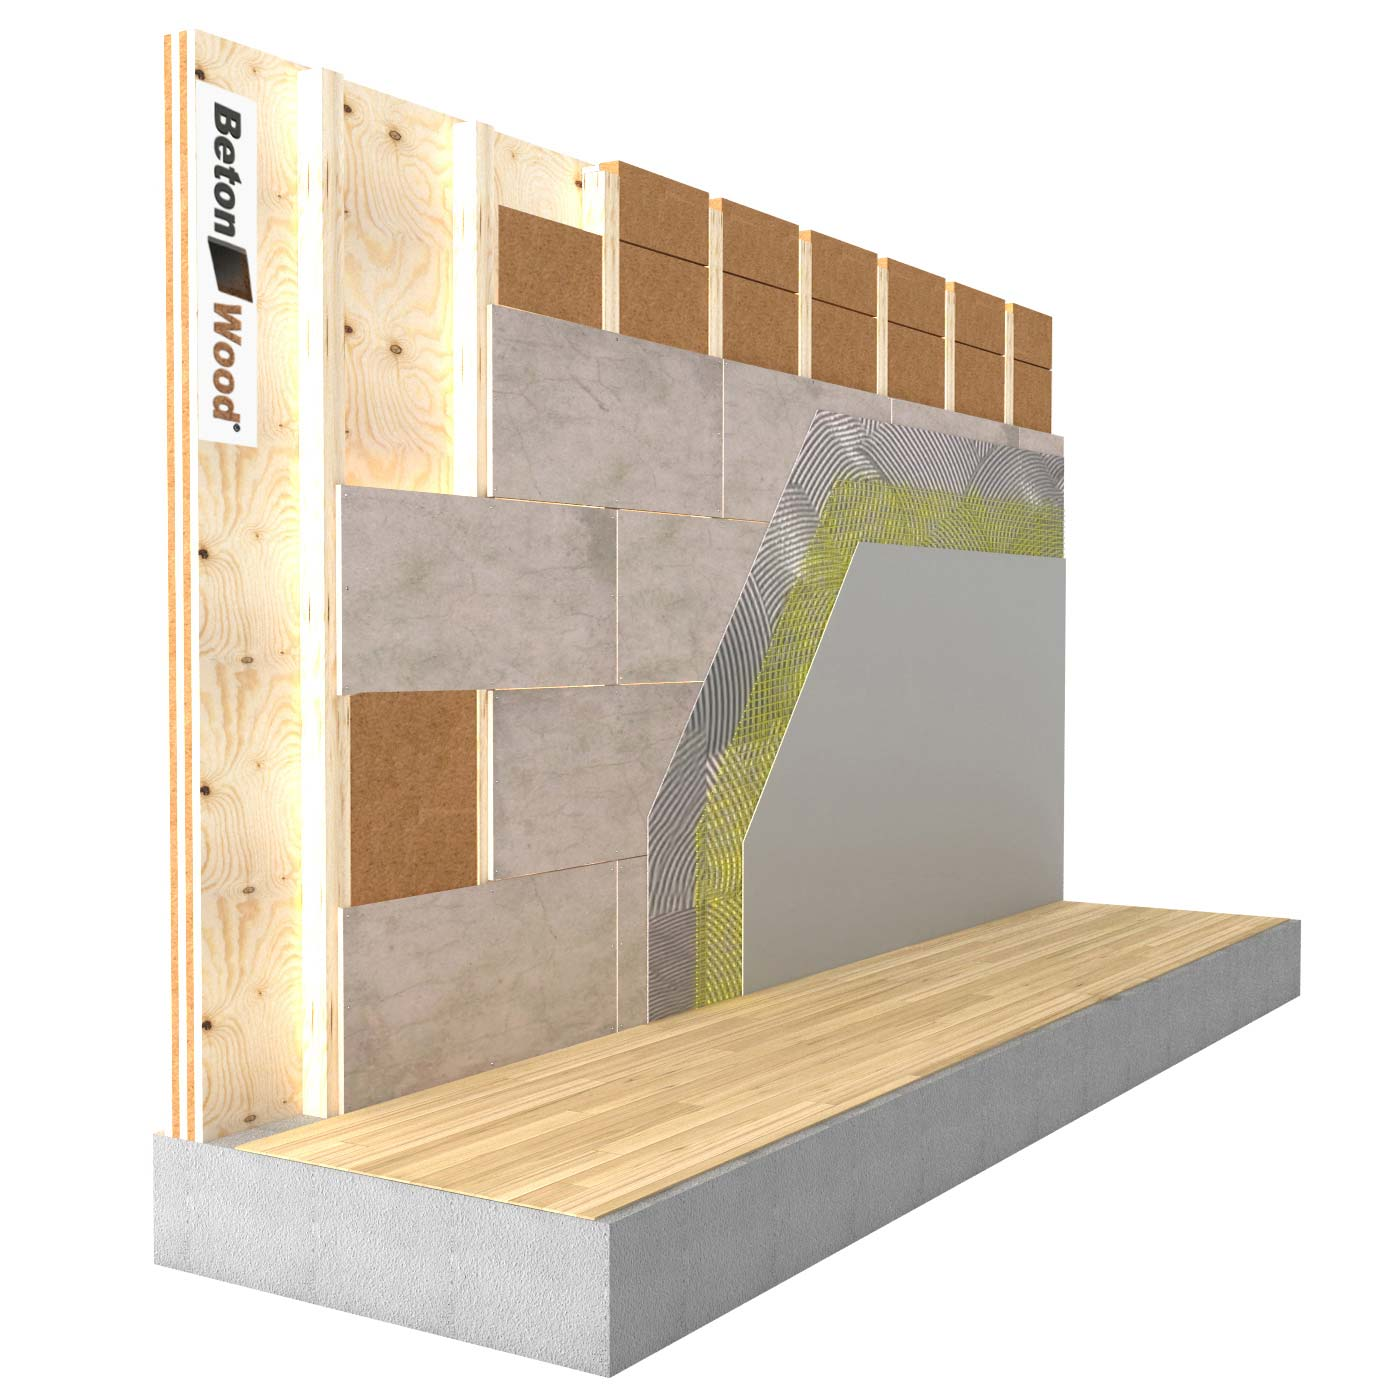 Internal insulation system in Protect Wood fibre board and cement bonded particle board